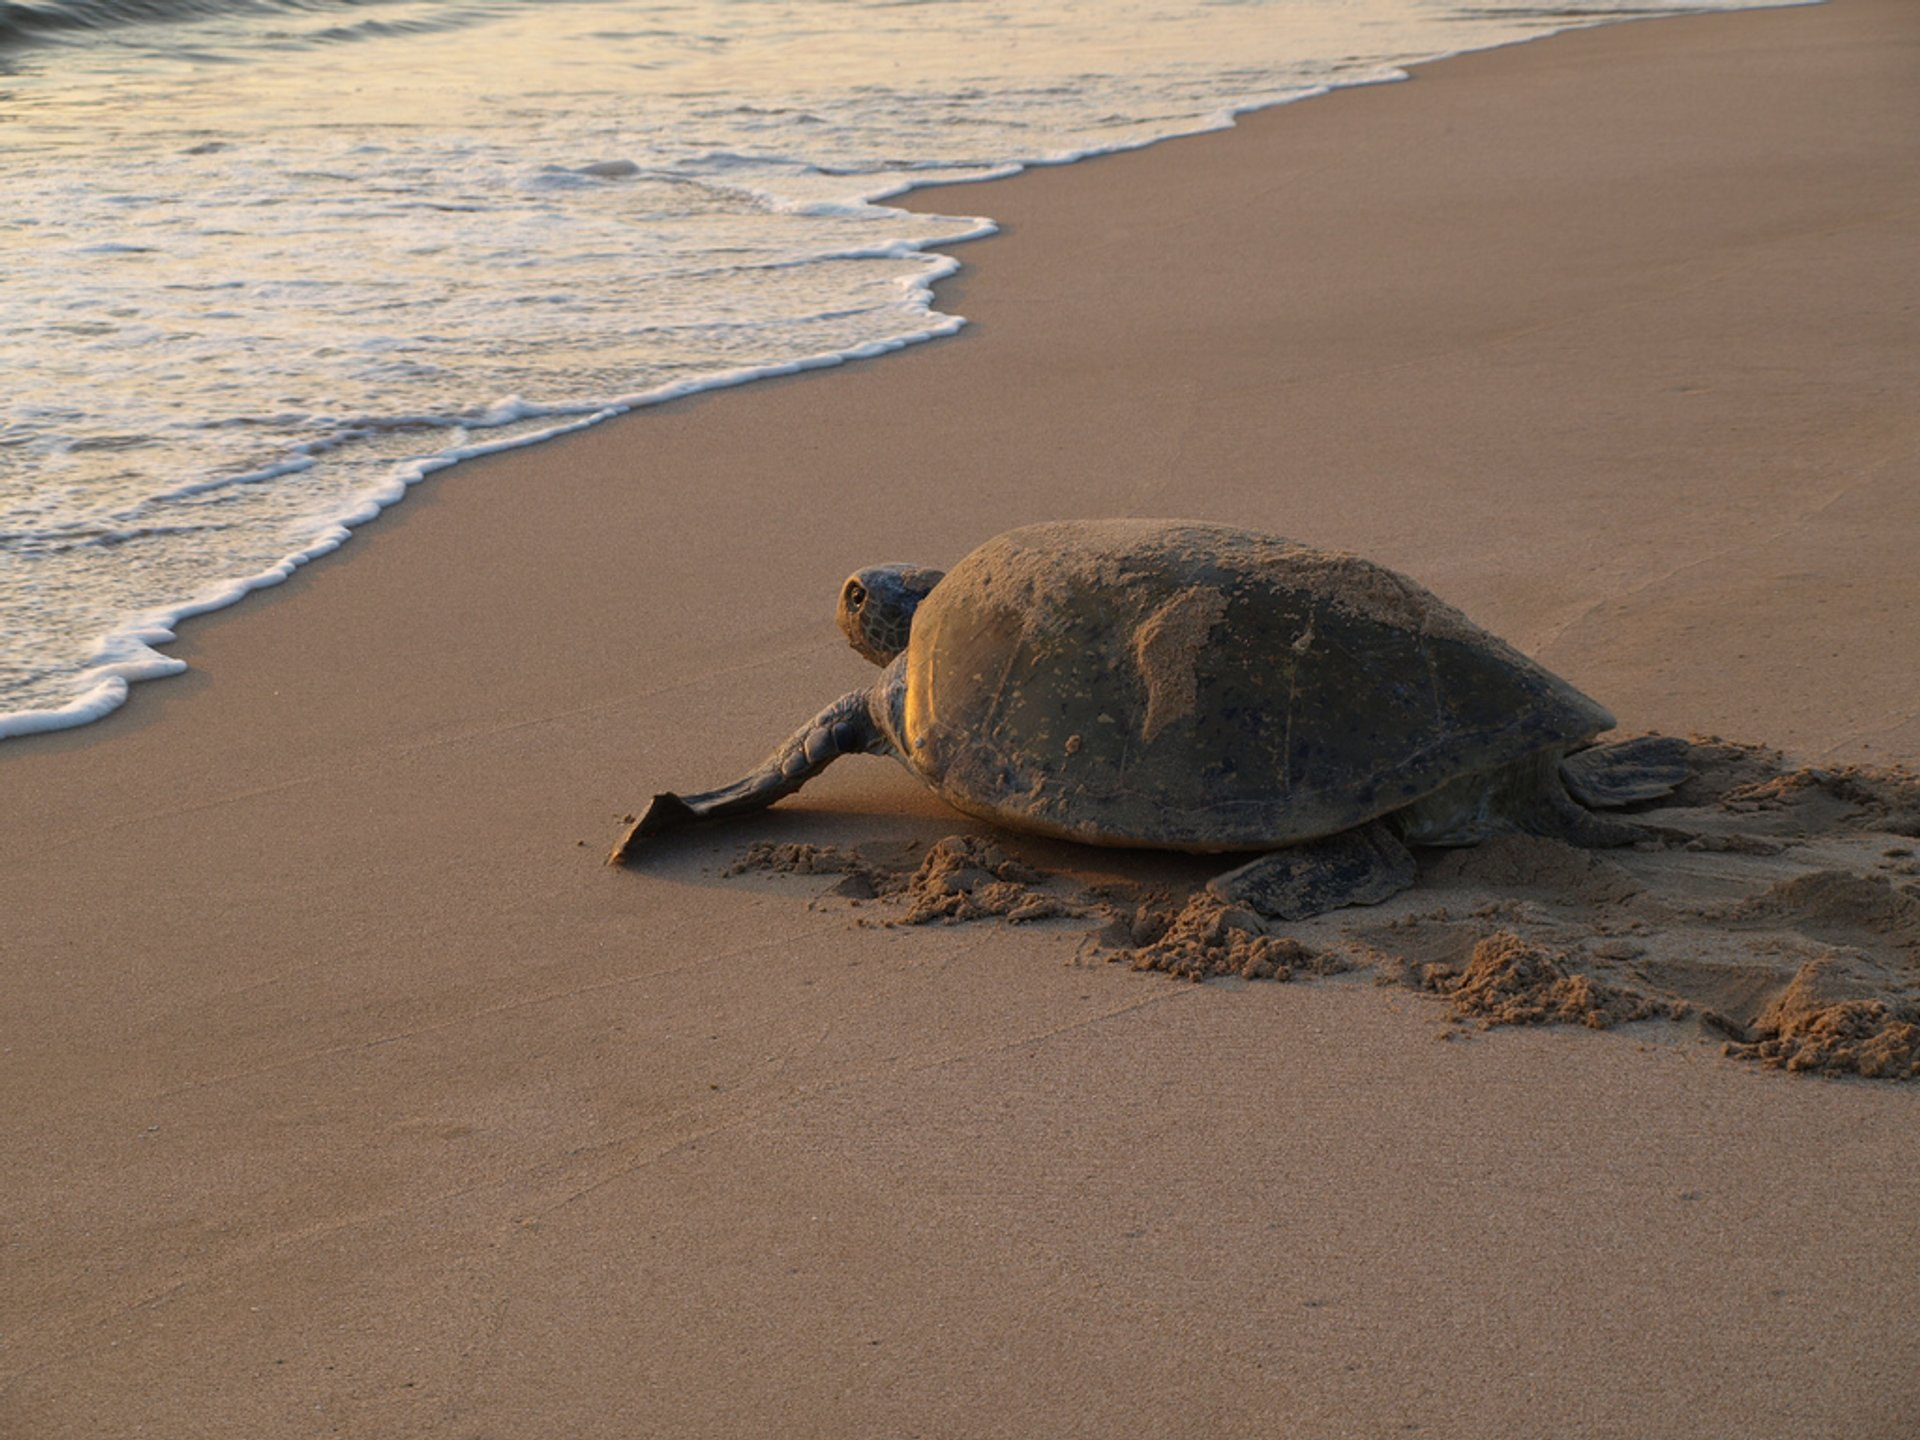 Turtle Nesting and Hatching in Oman - Best Time